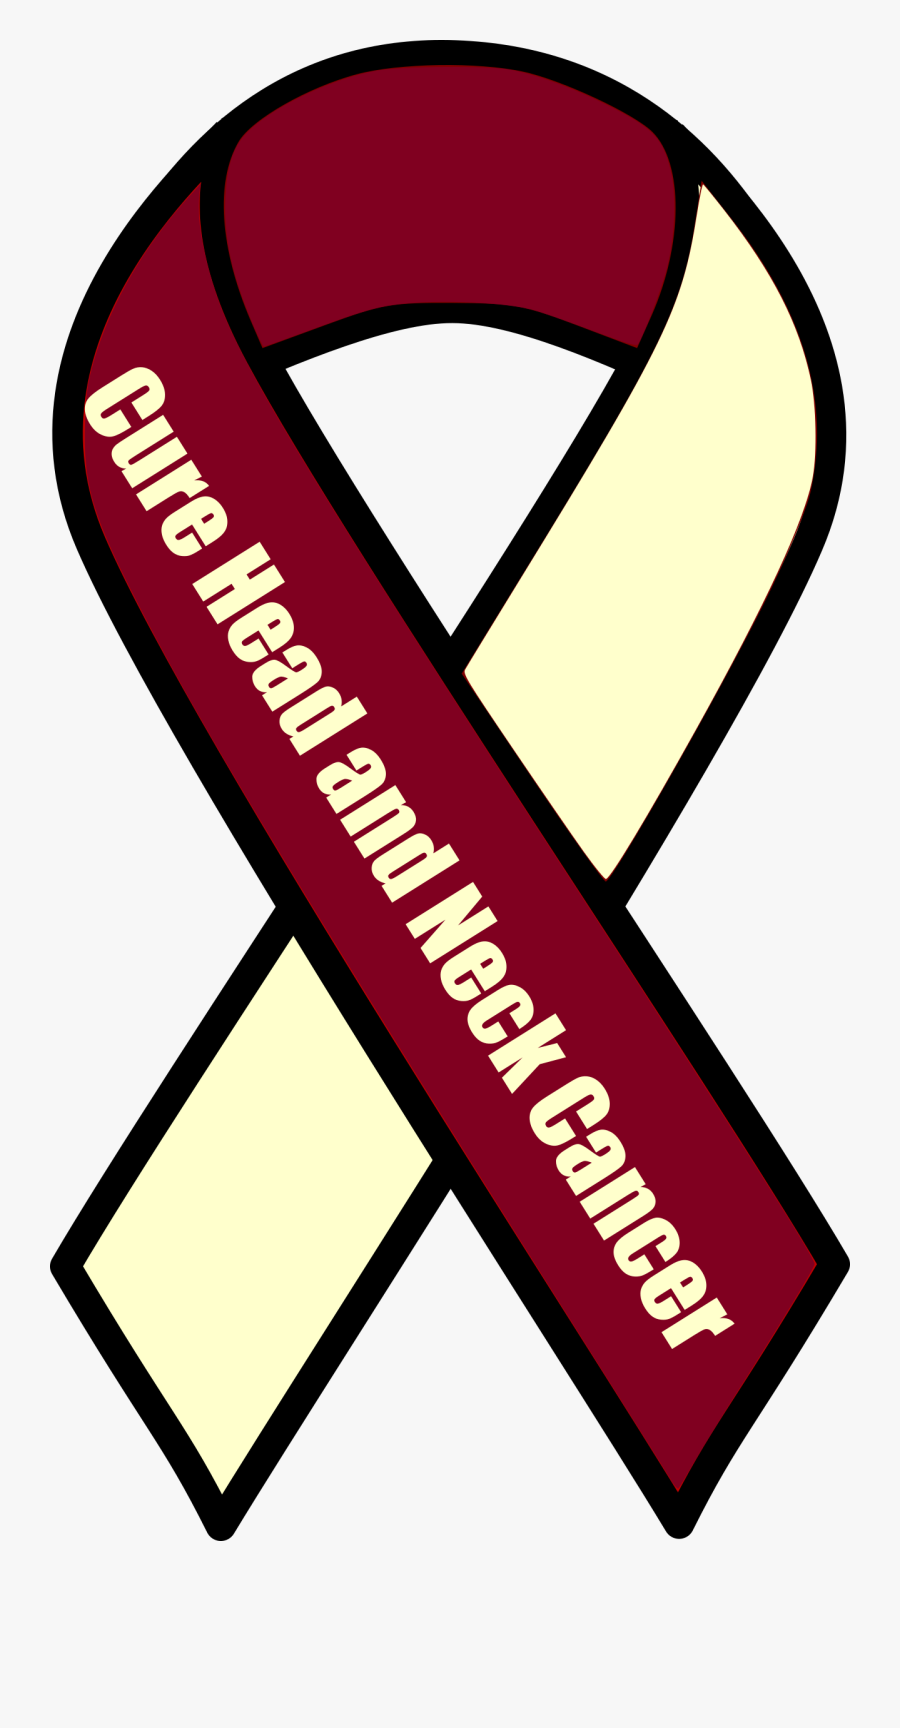 Clipart - Head And Neck Cancer Clipart, Transparent Clipart